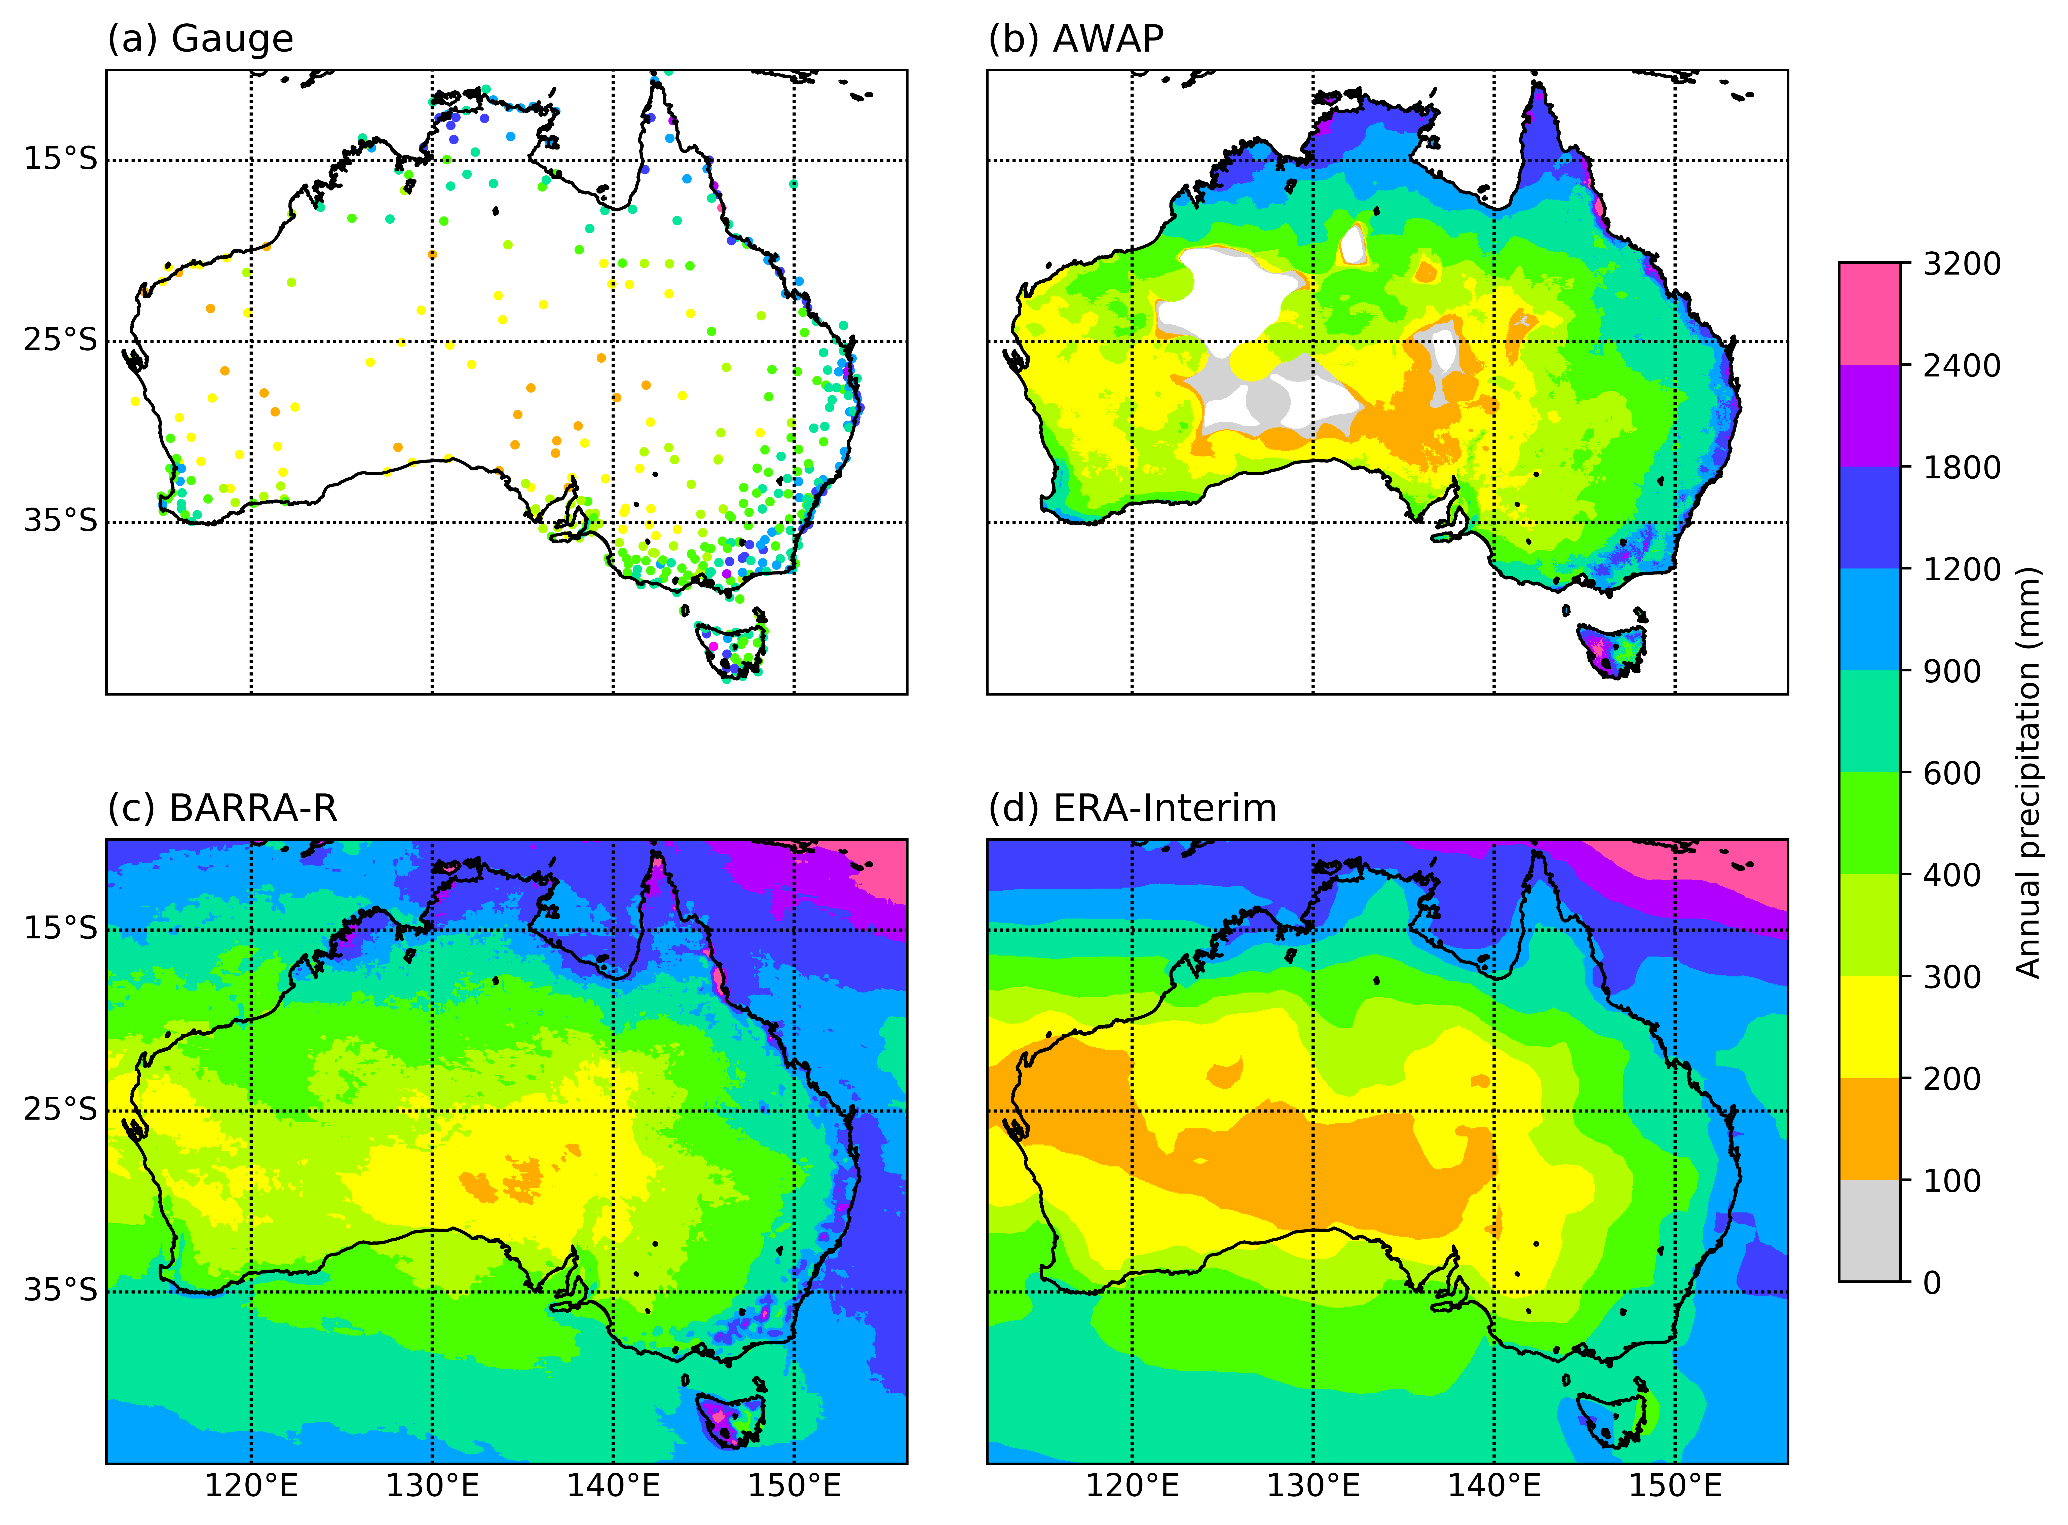 Figure 1 Annual precipitation across Australia (a) Gauge data, (b) AWAP, (c) BARRA-R, (d) ERA-Interim. Figure adapted from Acharya et al., 2019.